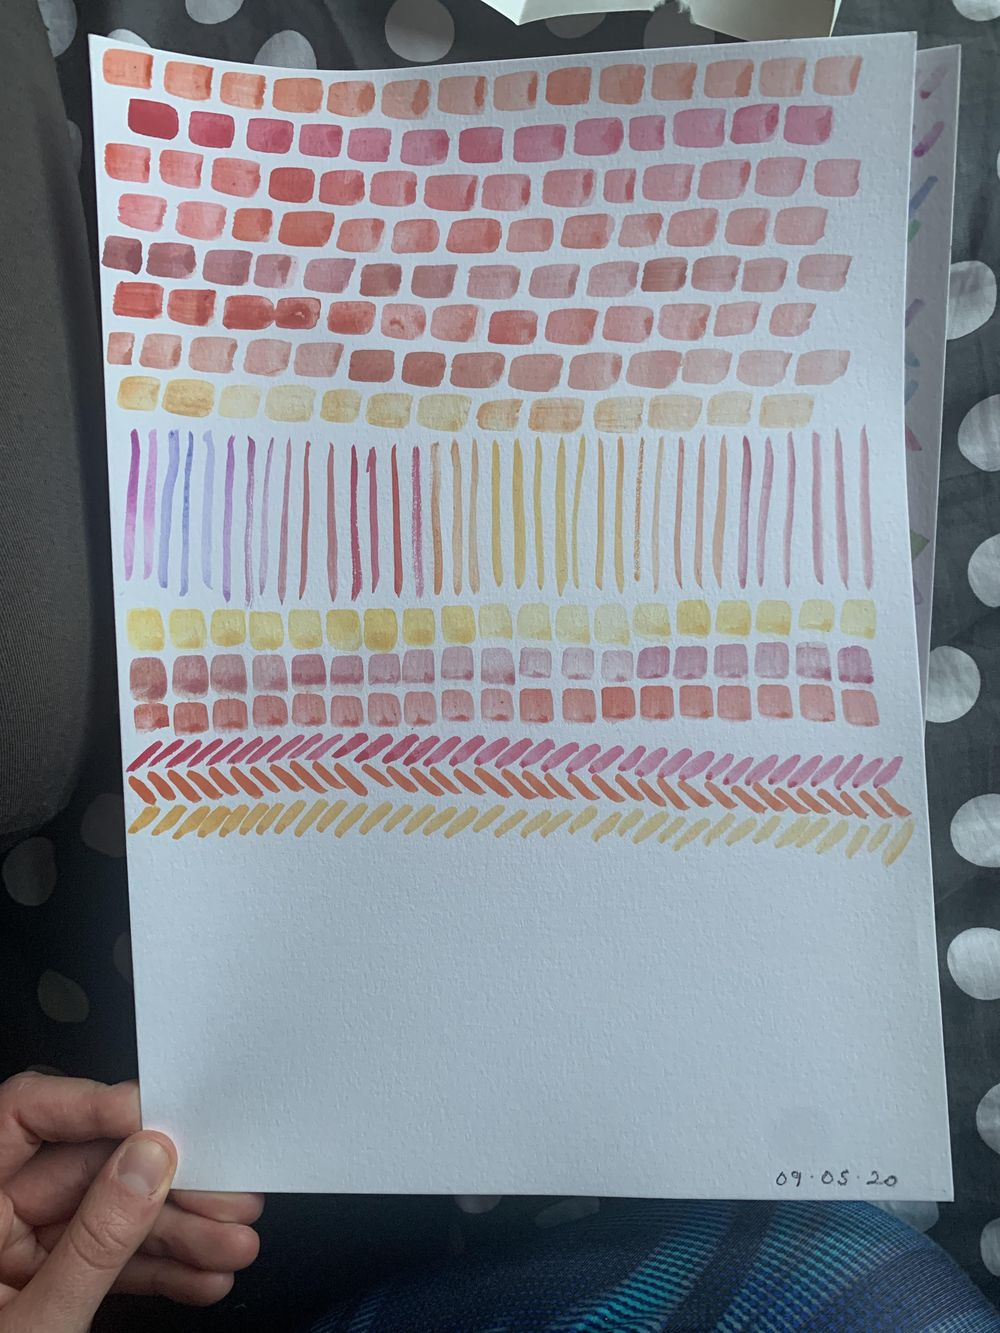 Watercolour Drills as a beginner! - image 6 - student project